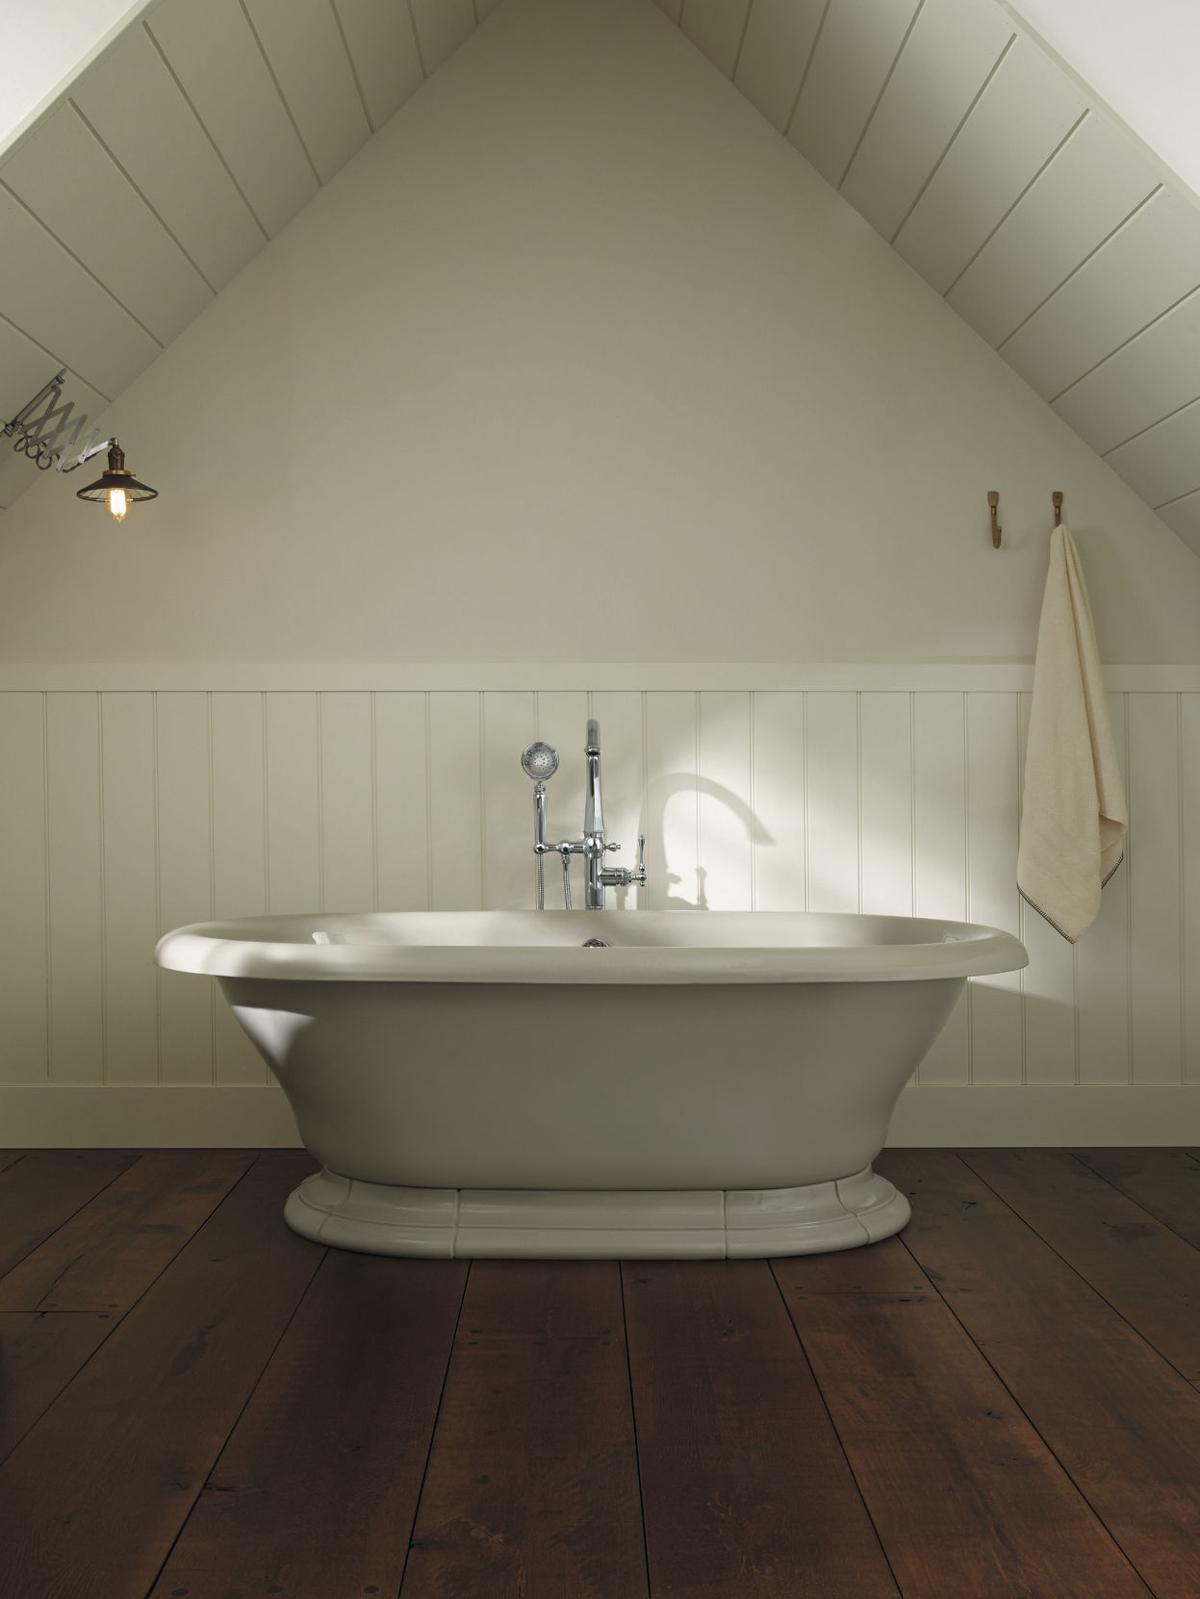 Freestanding baths need special tub fillers | House & Home ...